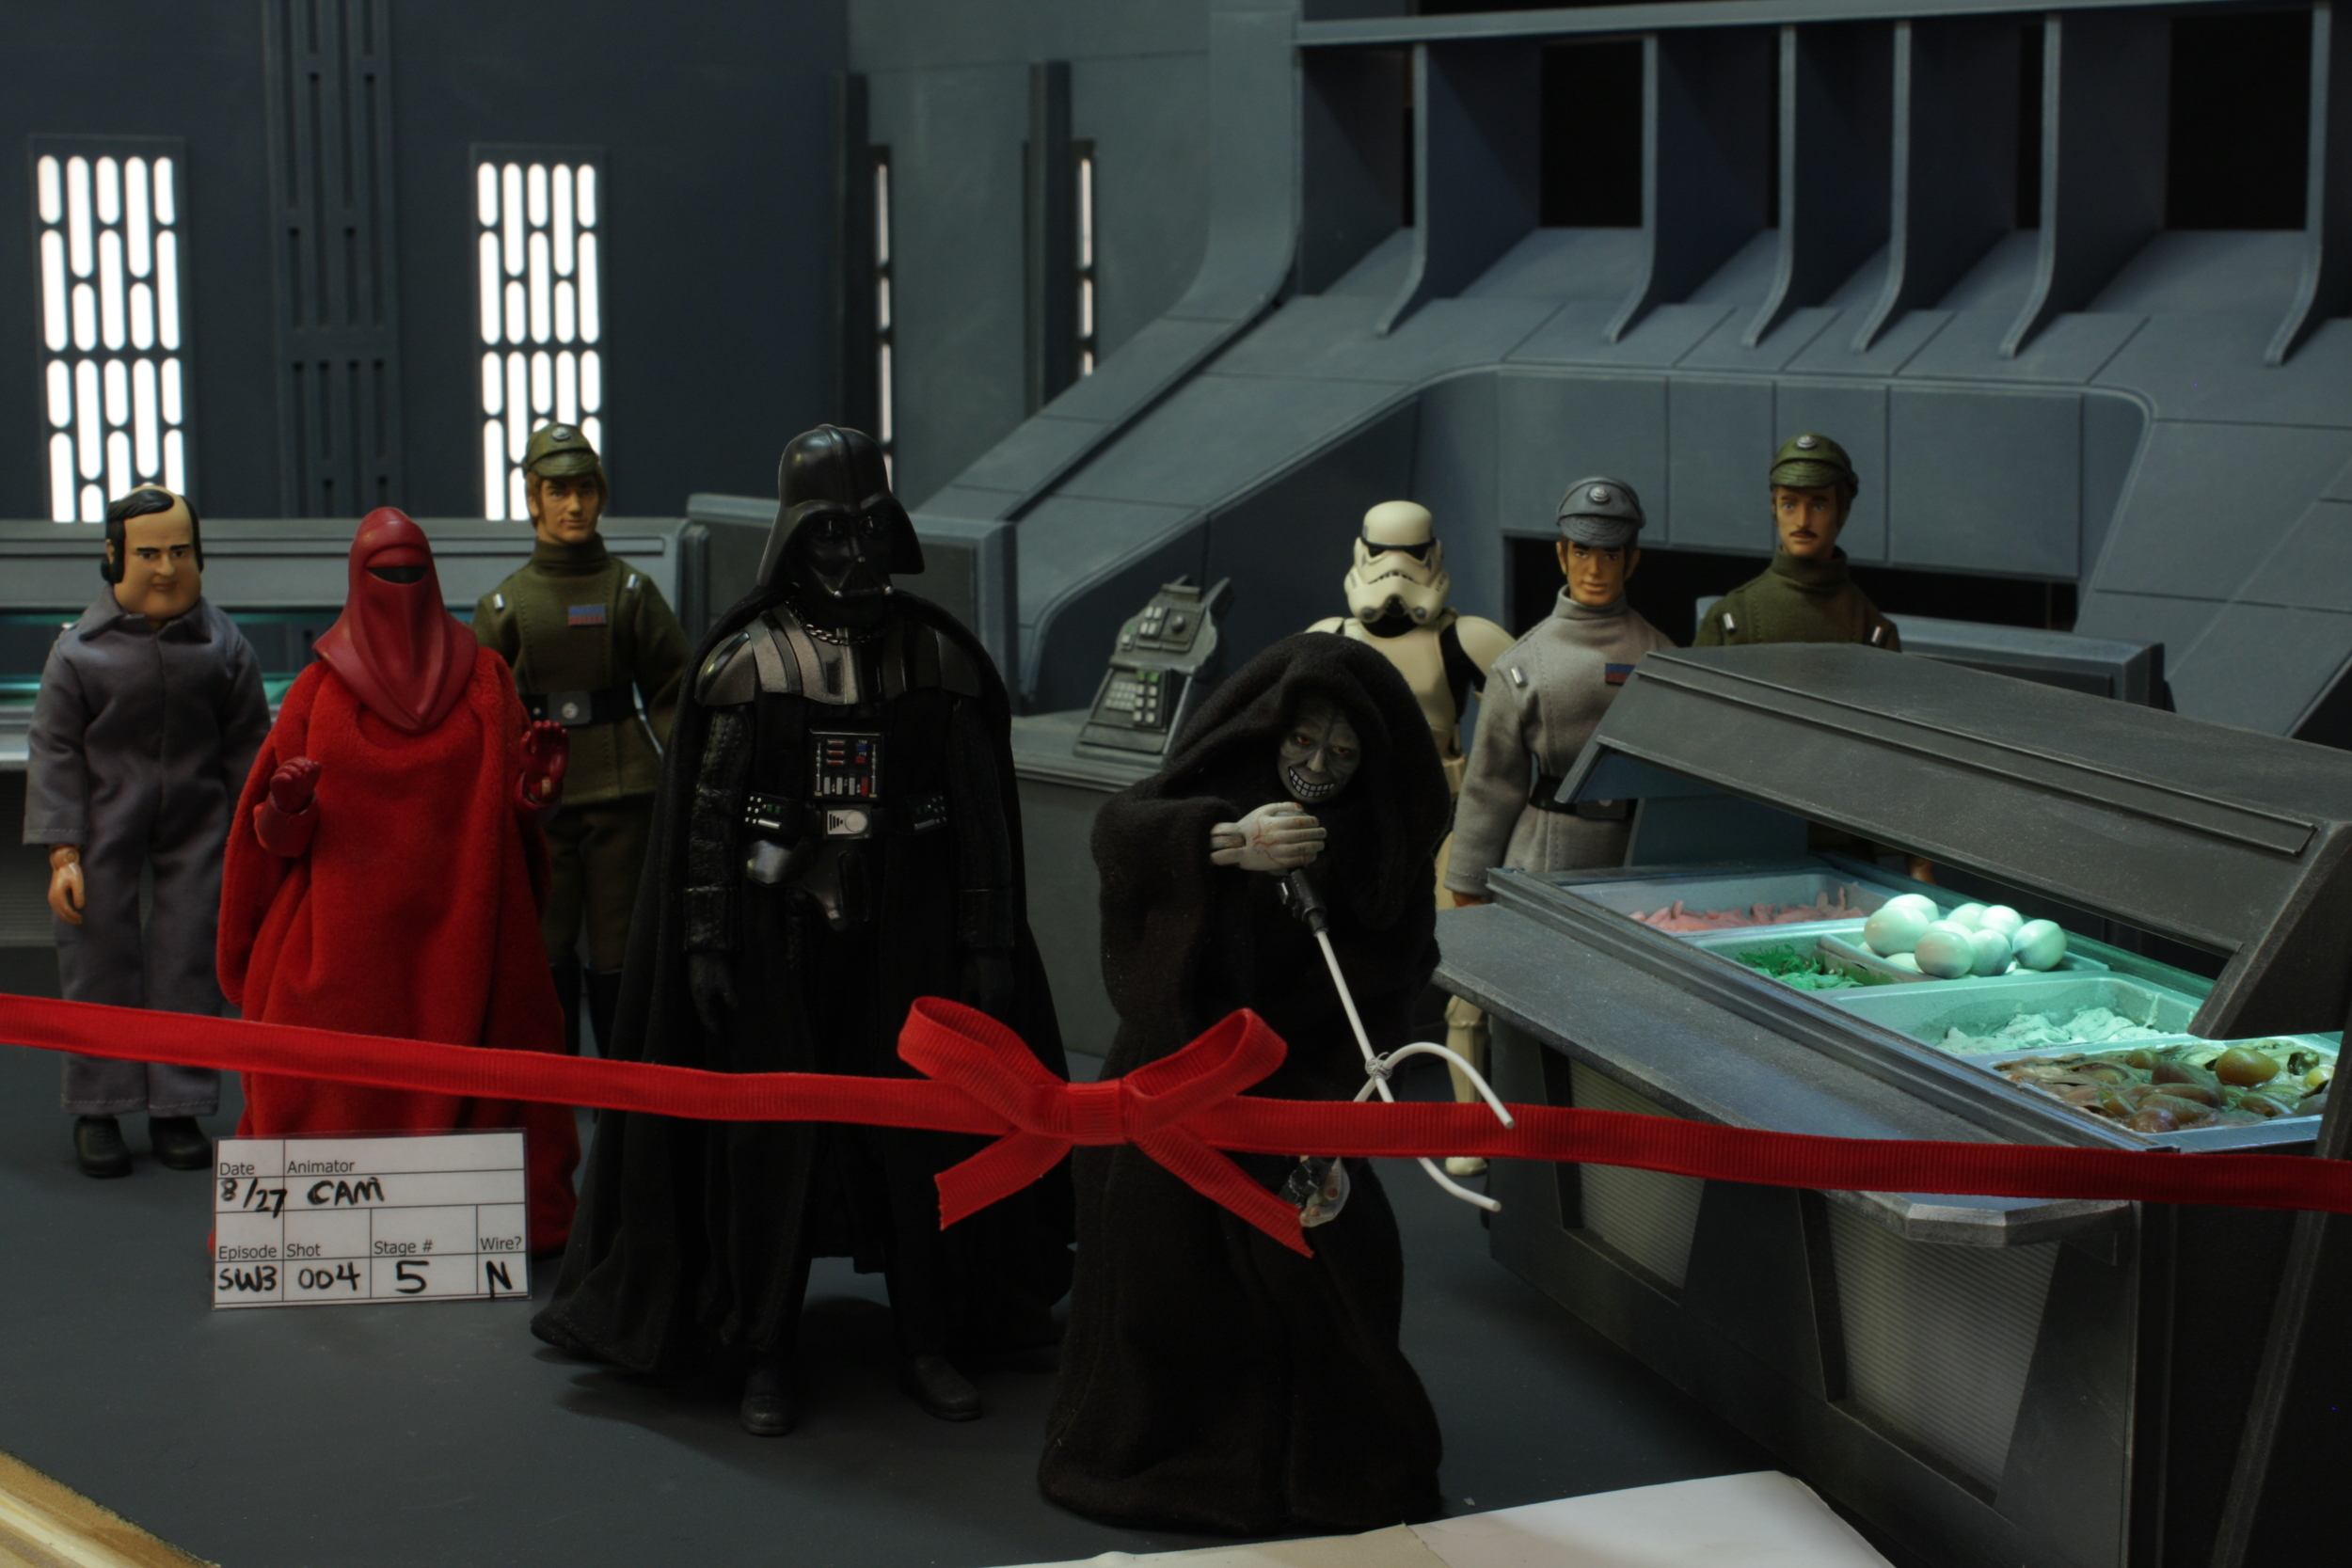 Robot Chicken Star Wars 2 Image 02.jpg